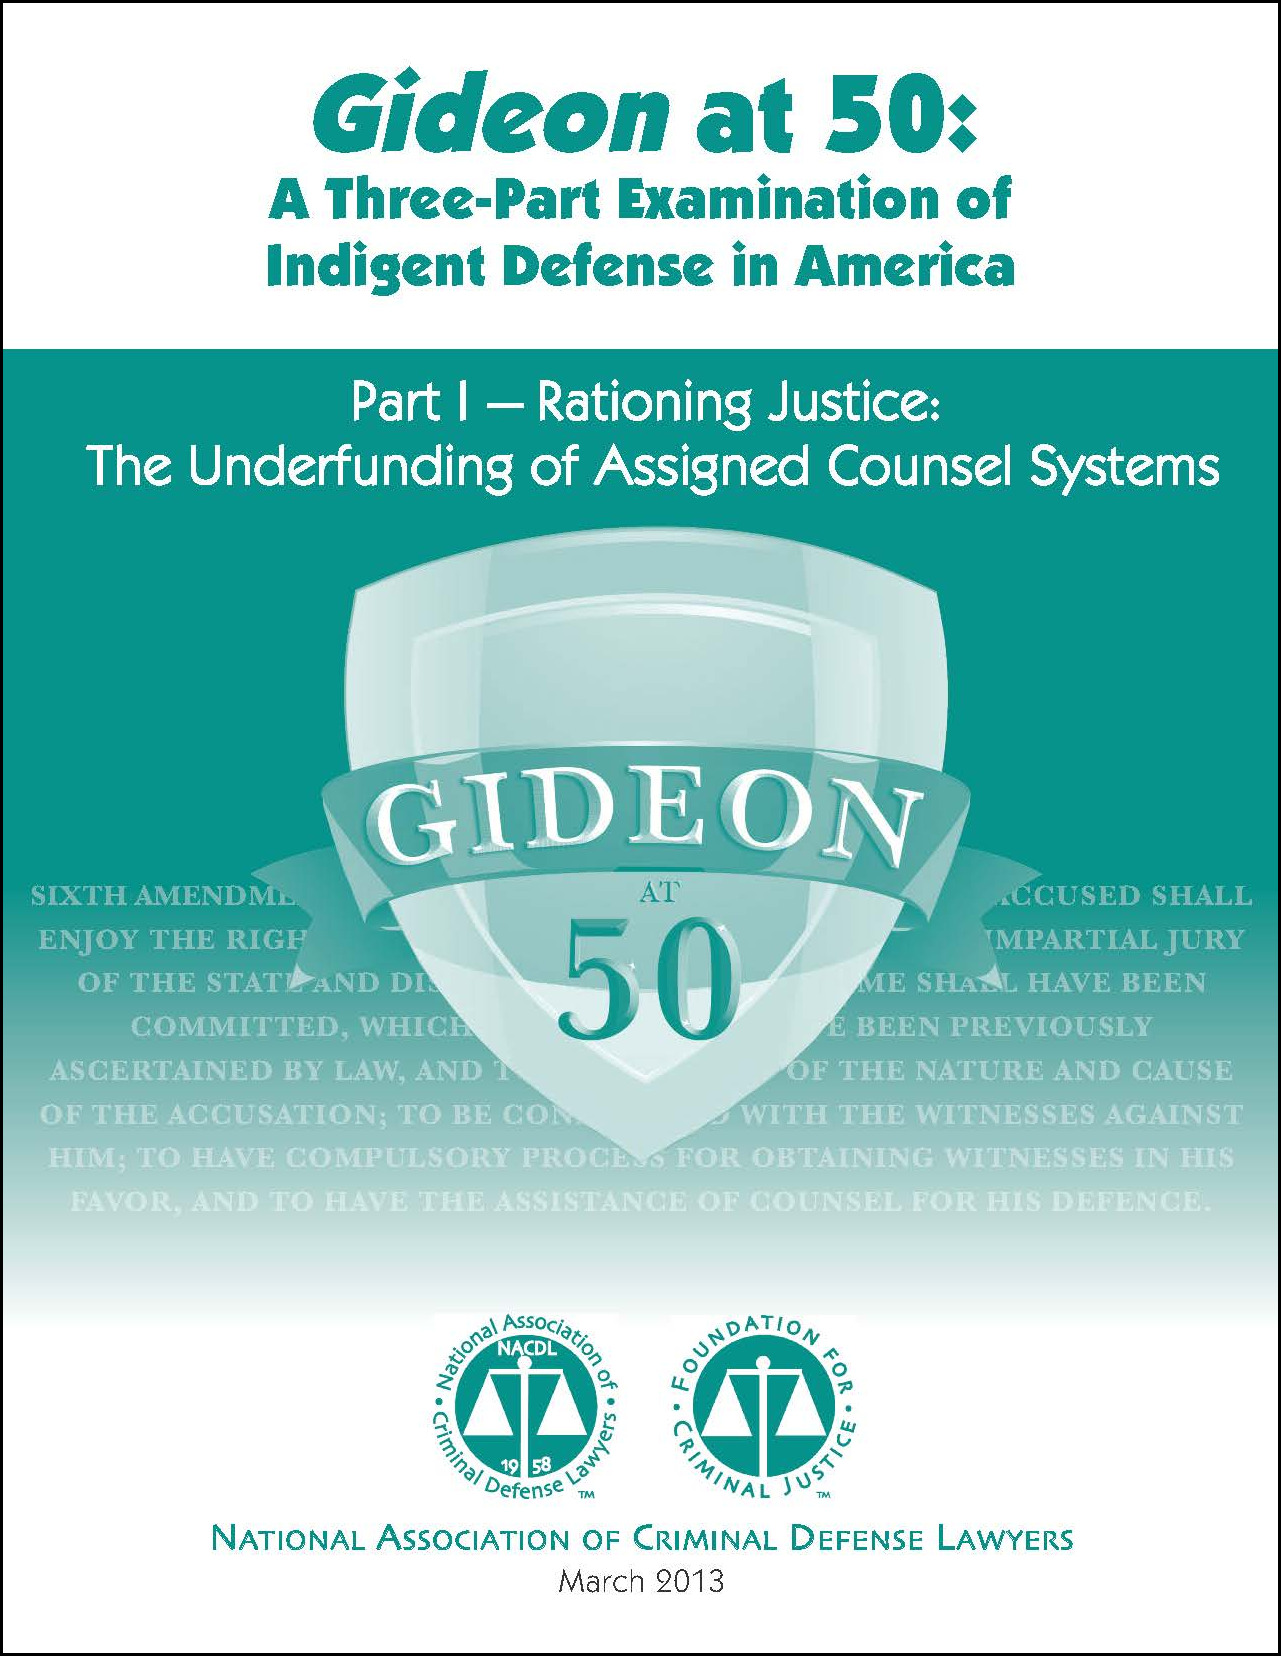 Gideon at 50: Rationing Justice: The Underfunding of Assigned Counsel Systems (Part 1) Cover